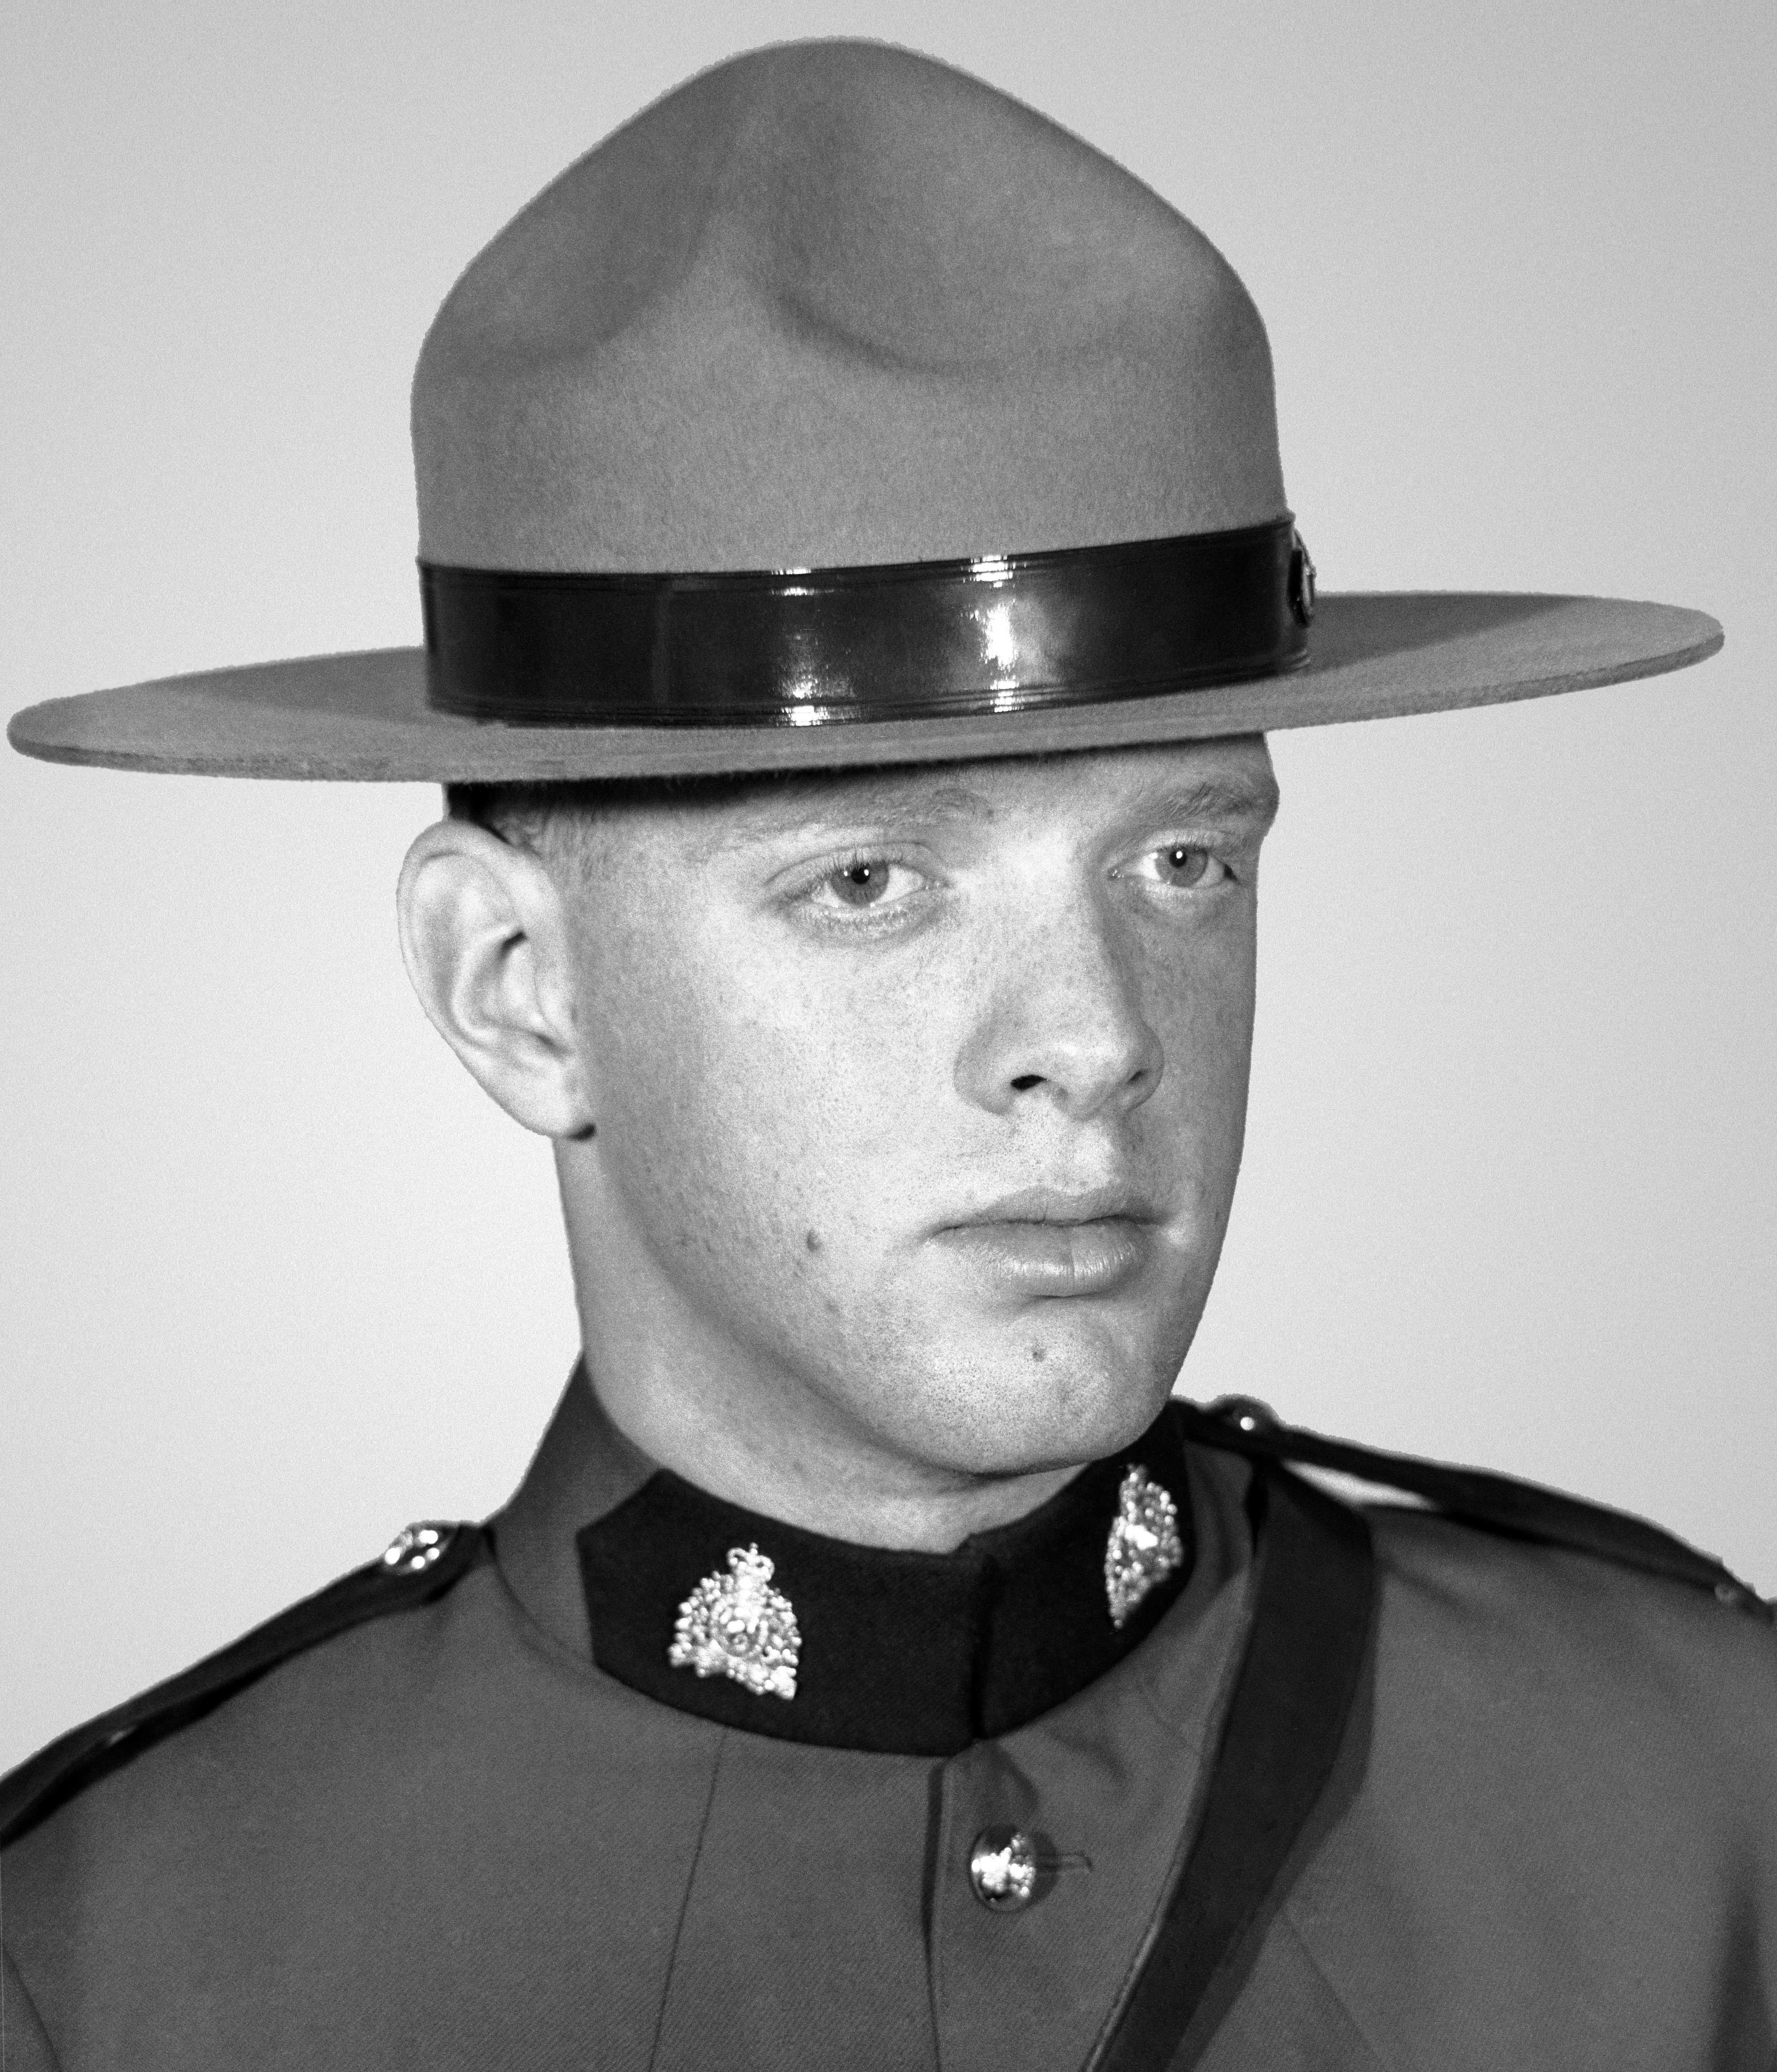 Special Constable George David Foster– © Her Majesty the Queen in Right of Canada as represented by the Royal Canadian Mounted Police